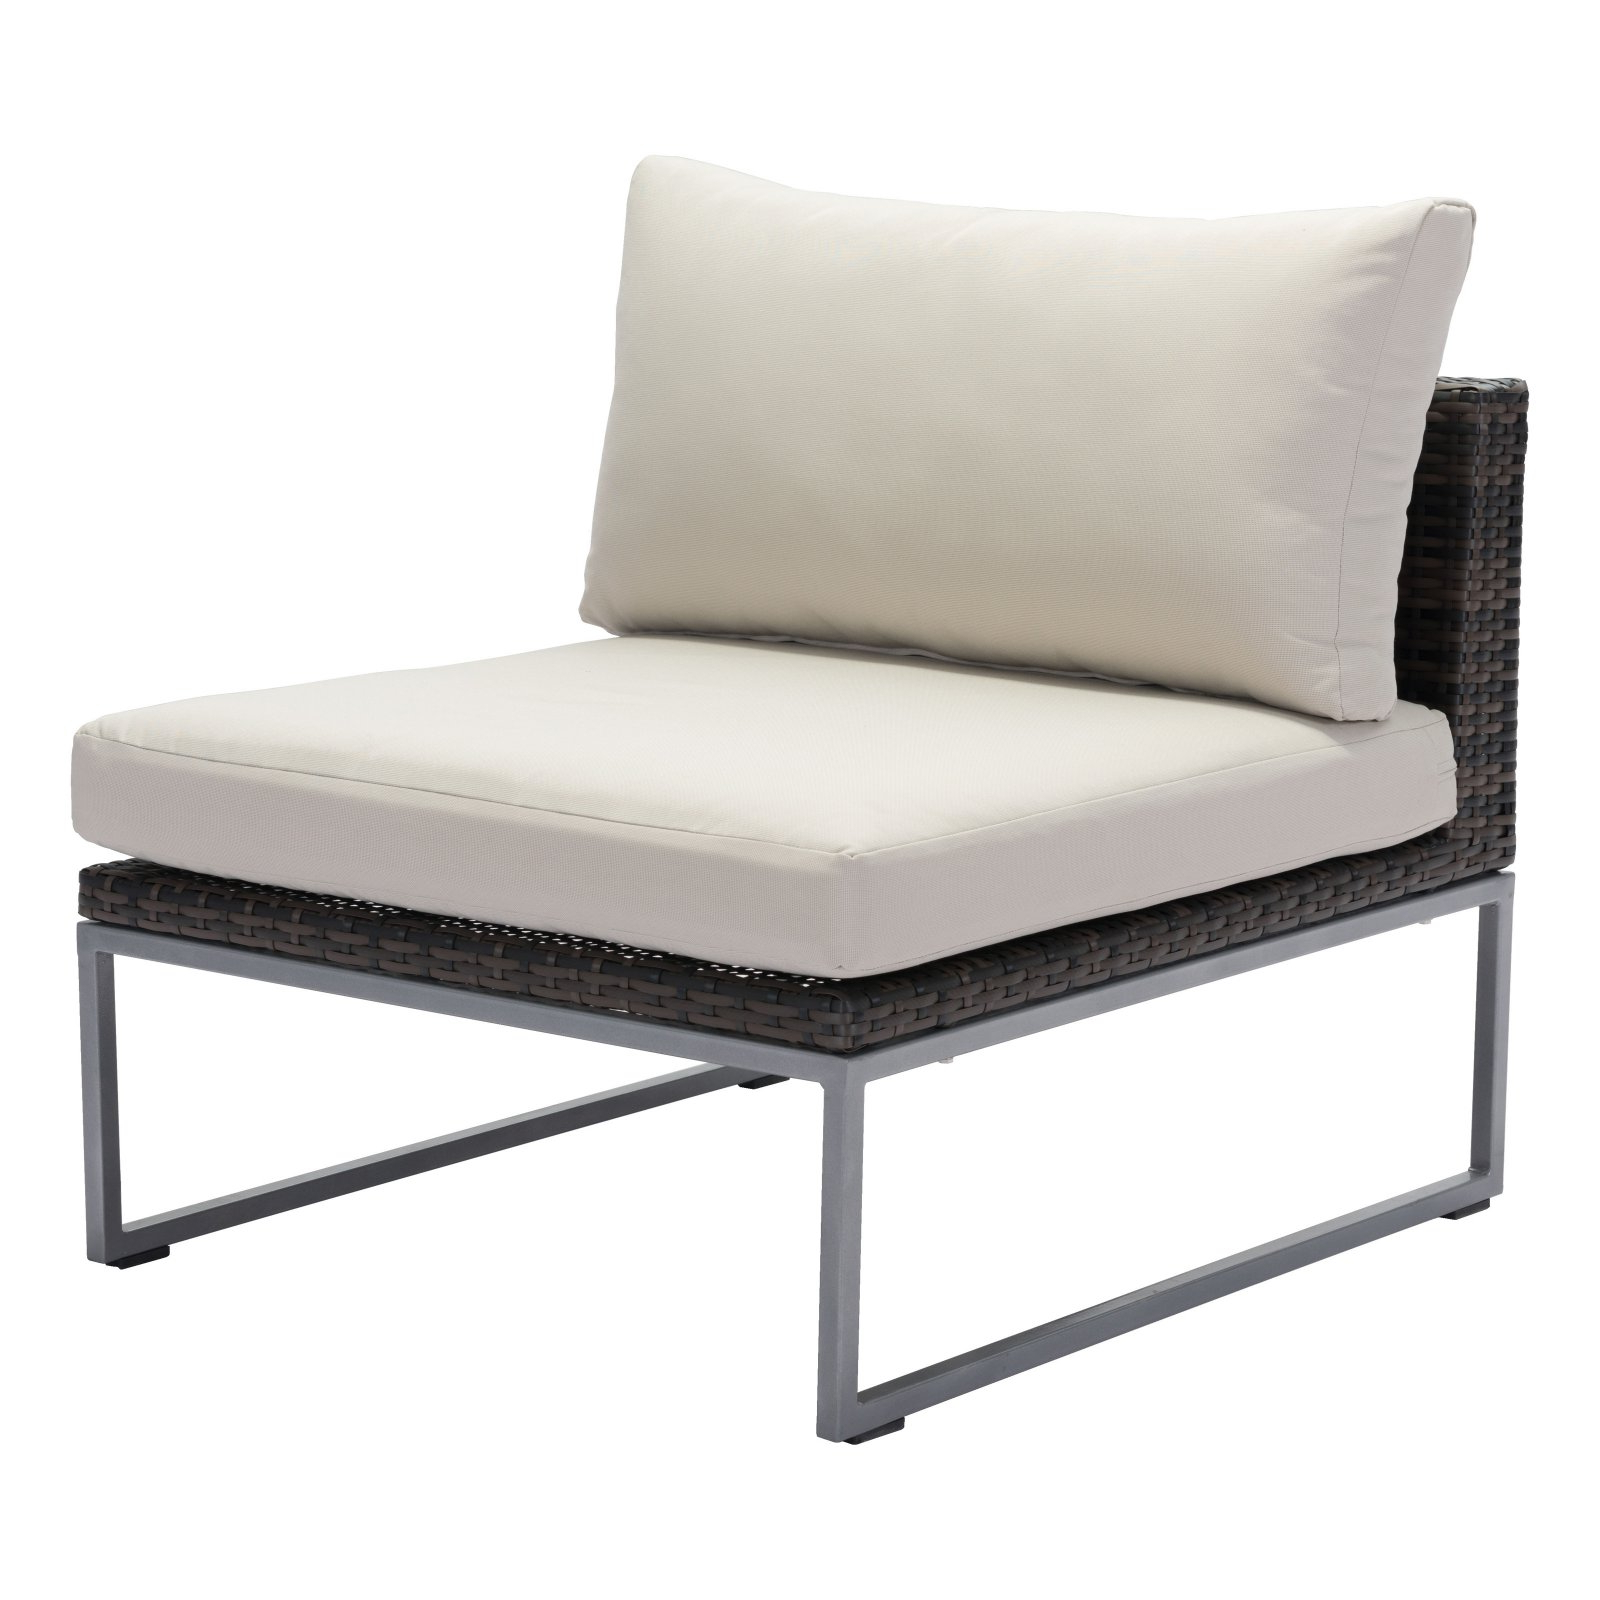 Well Known Outdoor Zuo Modern Malibu Aluminum Patio Middle Chair In With Repp Patio Sofas With Cushion (View 15 of 25)